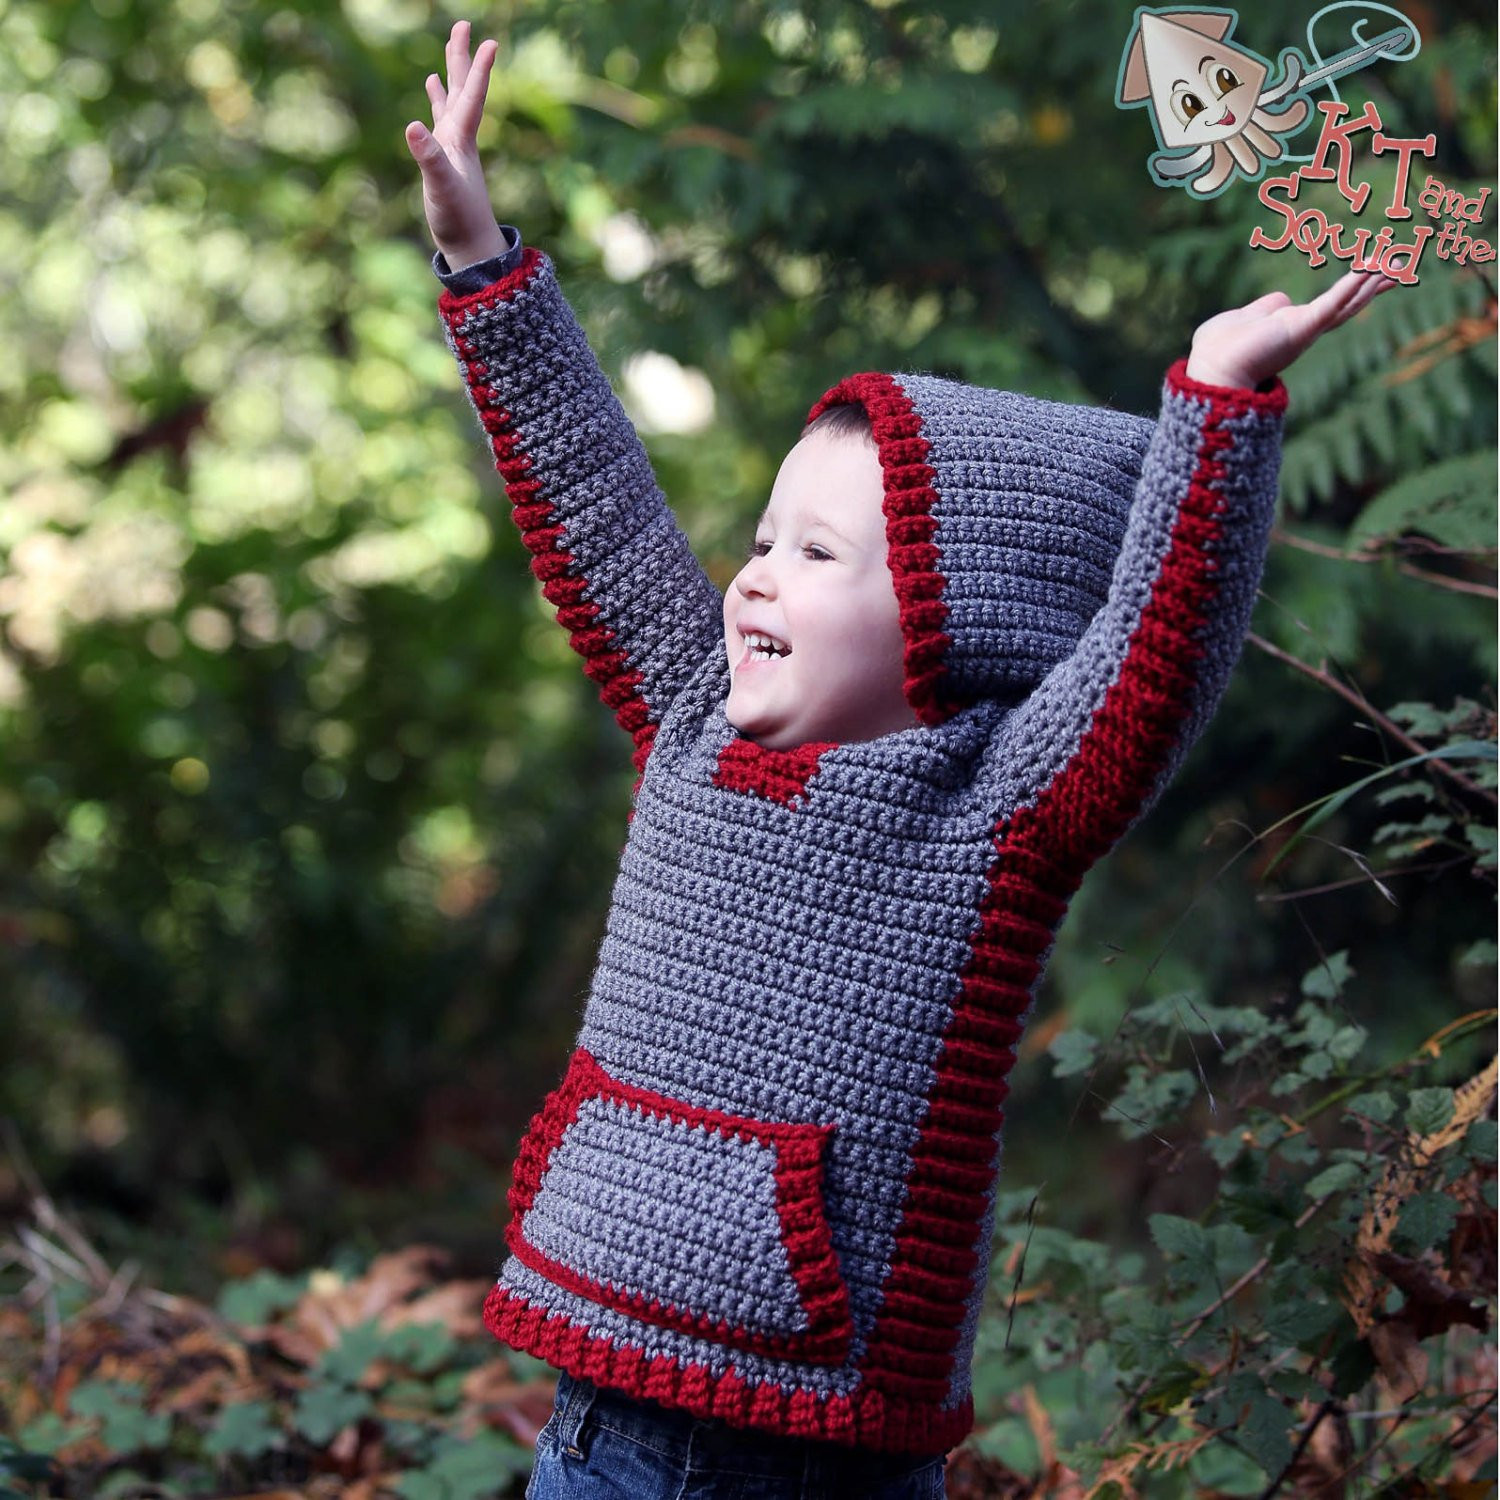 Crochet Hoodie Awesome Crochet Pattern Crochet Childrens Sweater Boys Hoo Girls Of Awesome 43 Images Crochet Hoodie